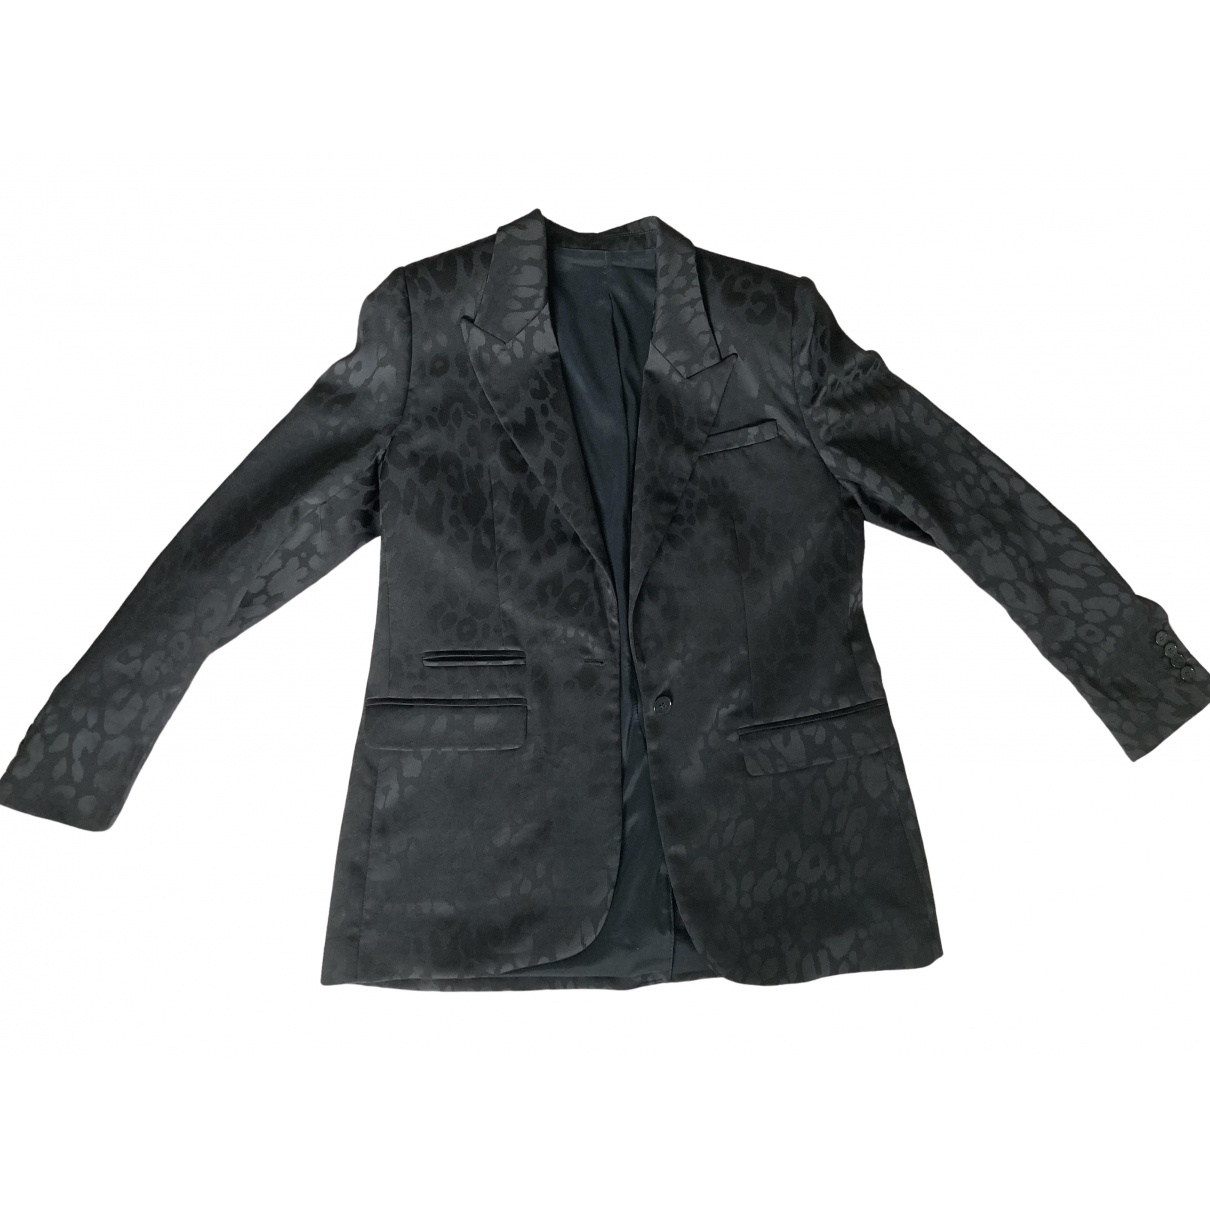 The Kooples \N Black jacket for Women 38 FR